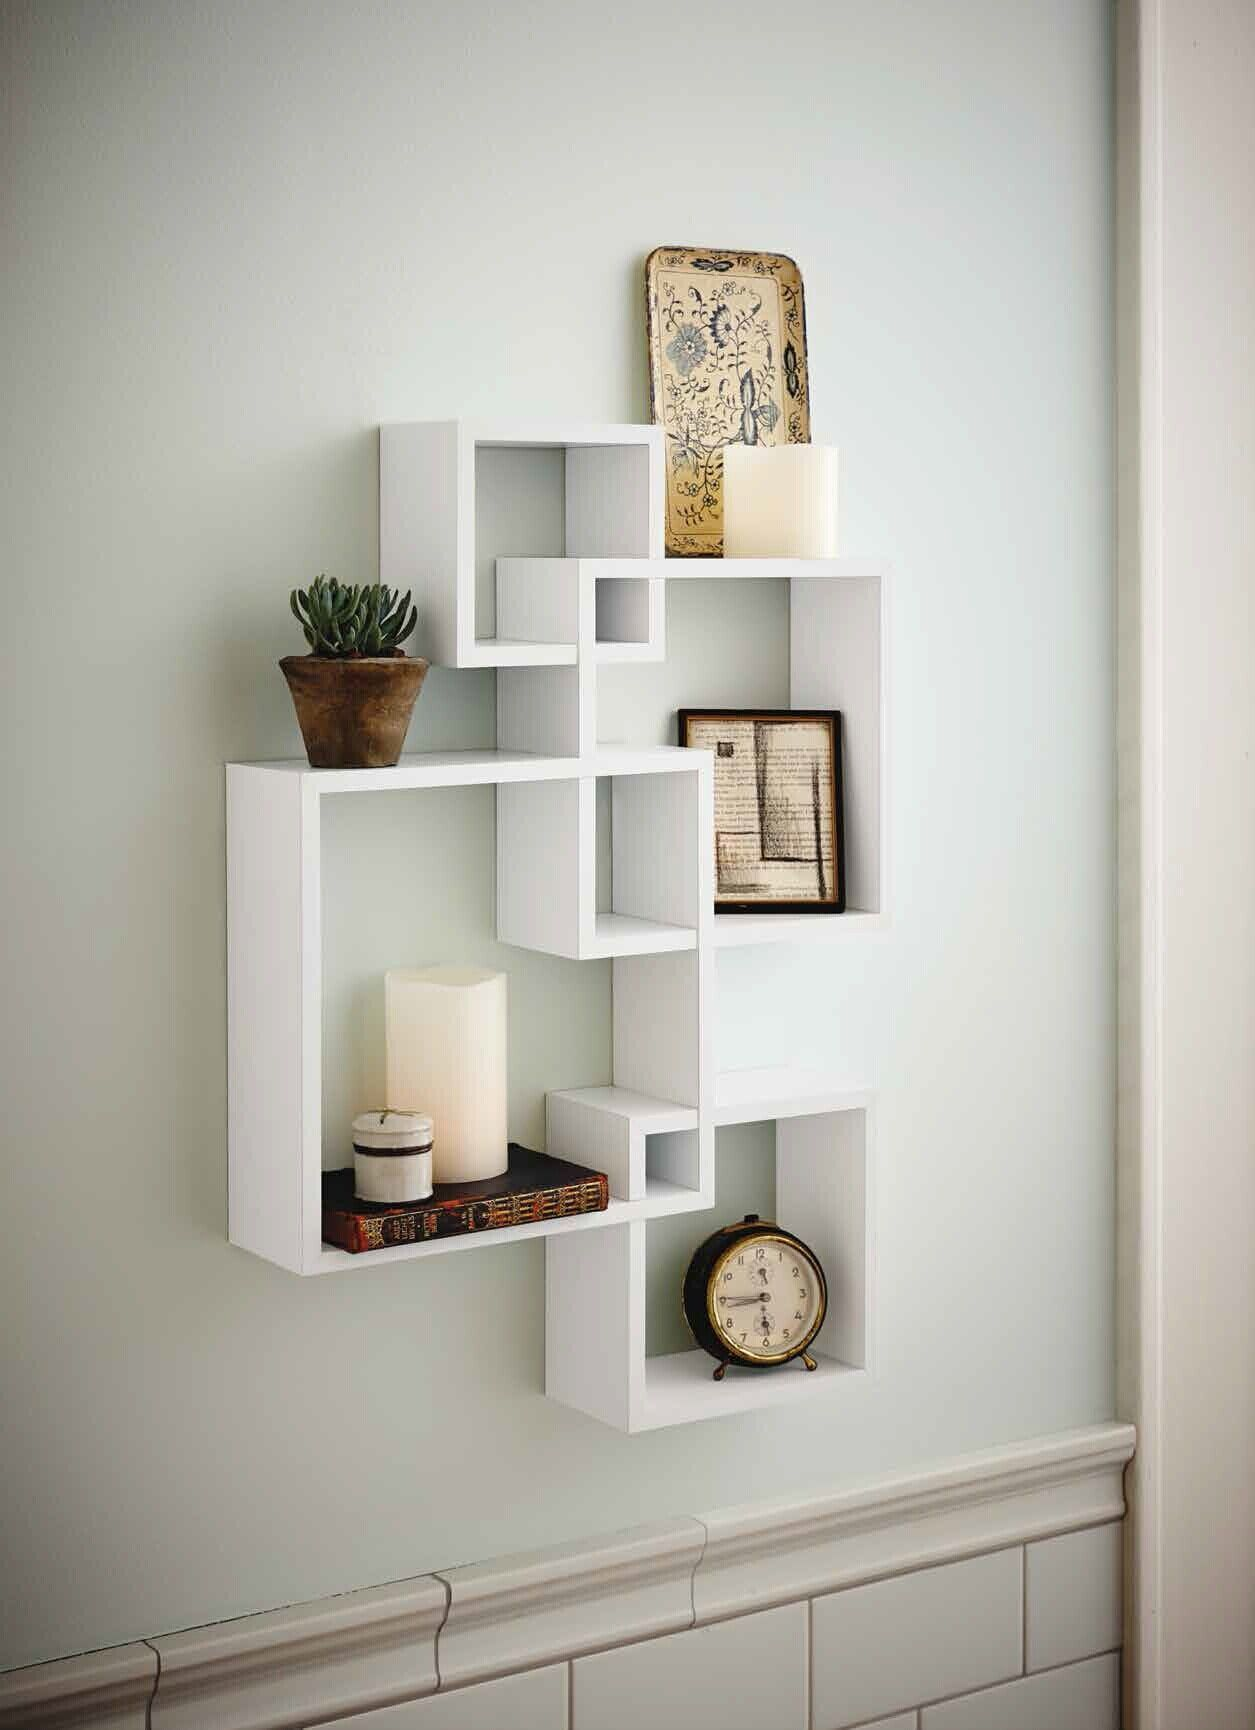 Shelving Solution Intersecting Decorative White Color Wall